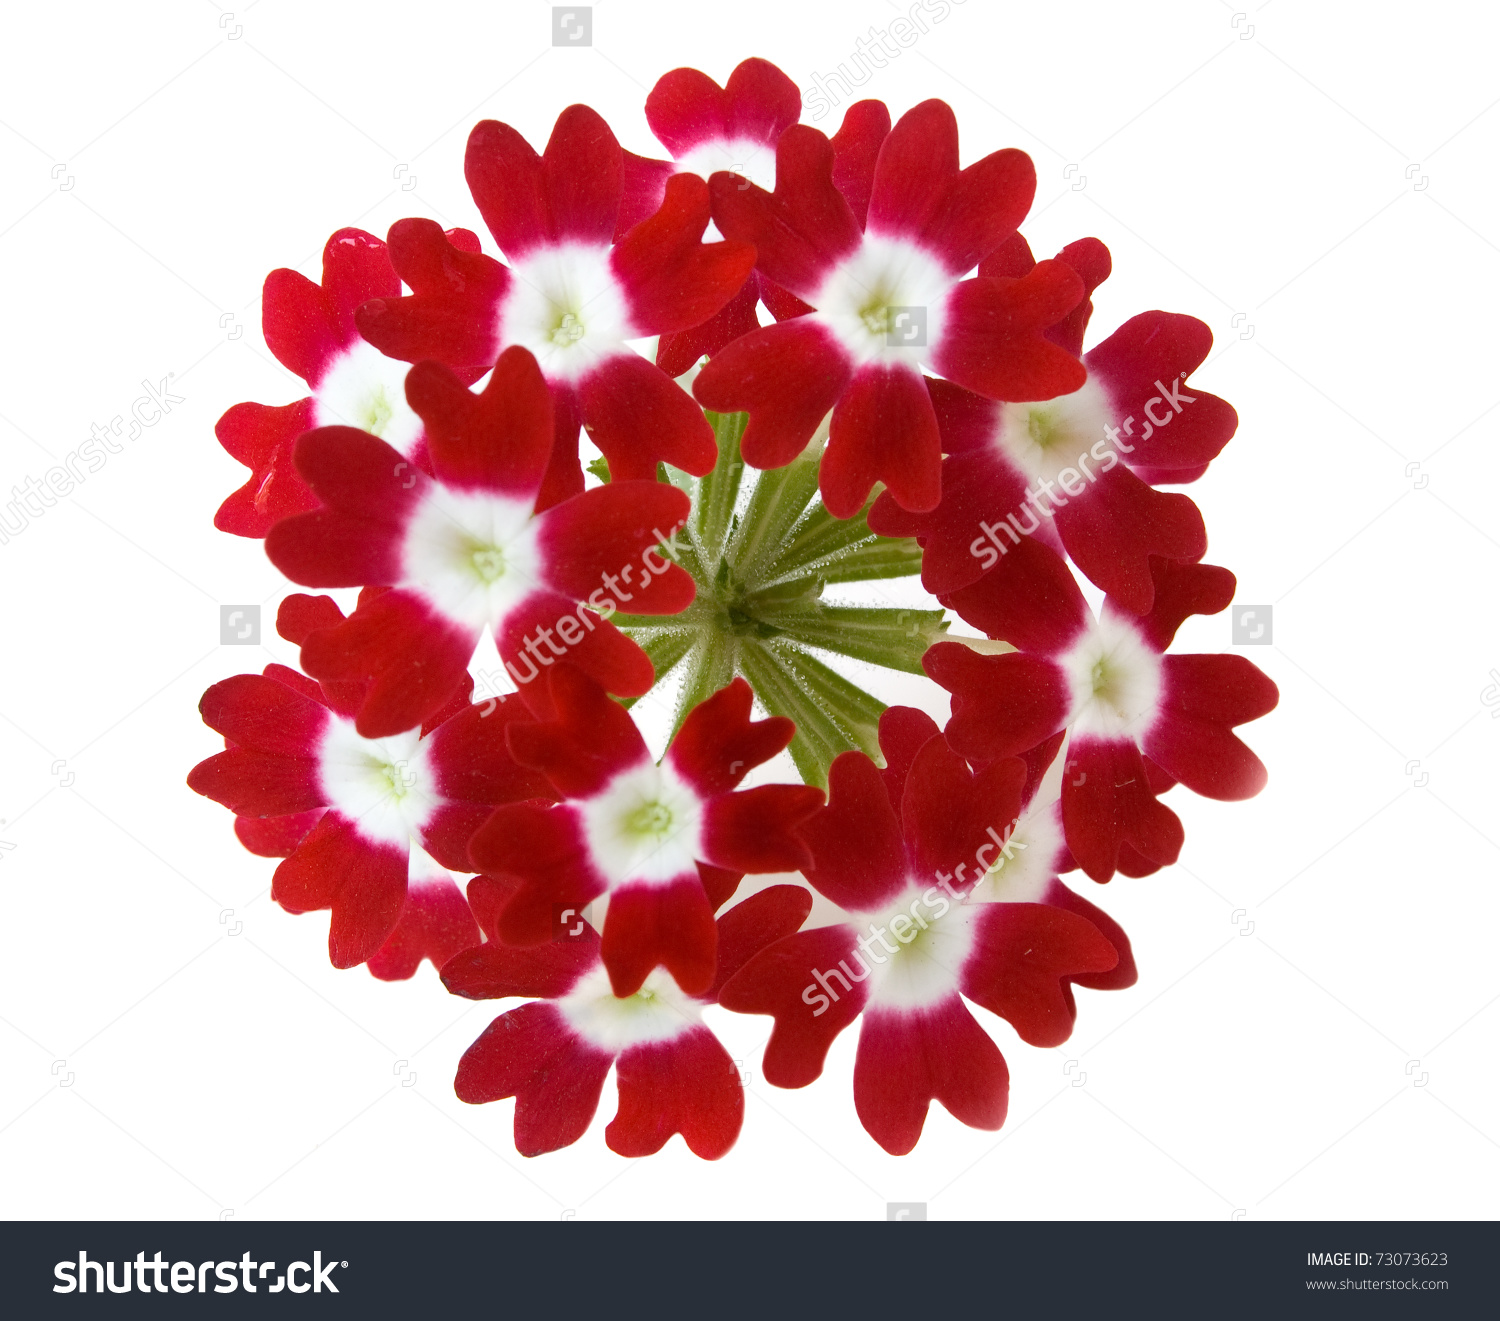 Red Verbena Flower Isolated On White Background Stock Photo.